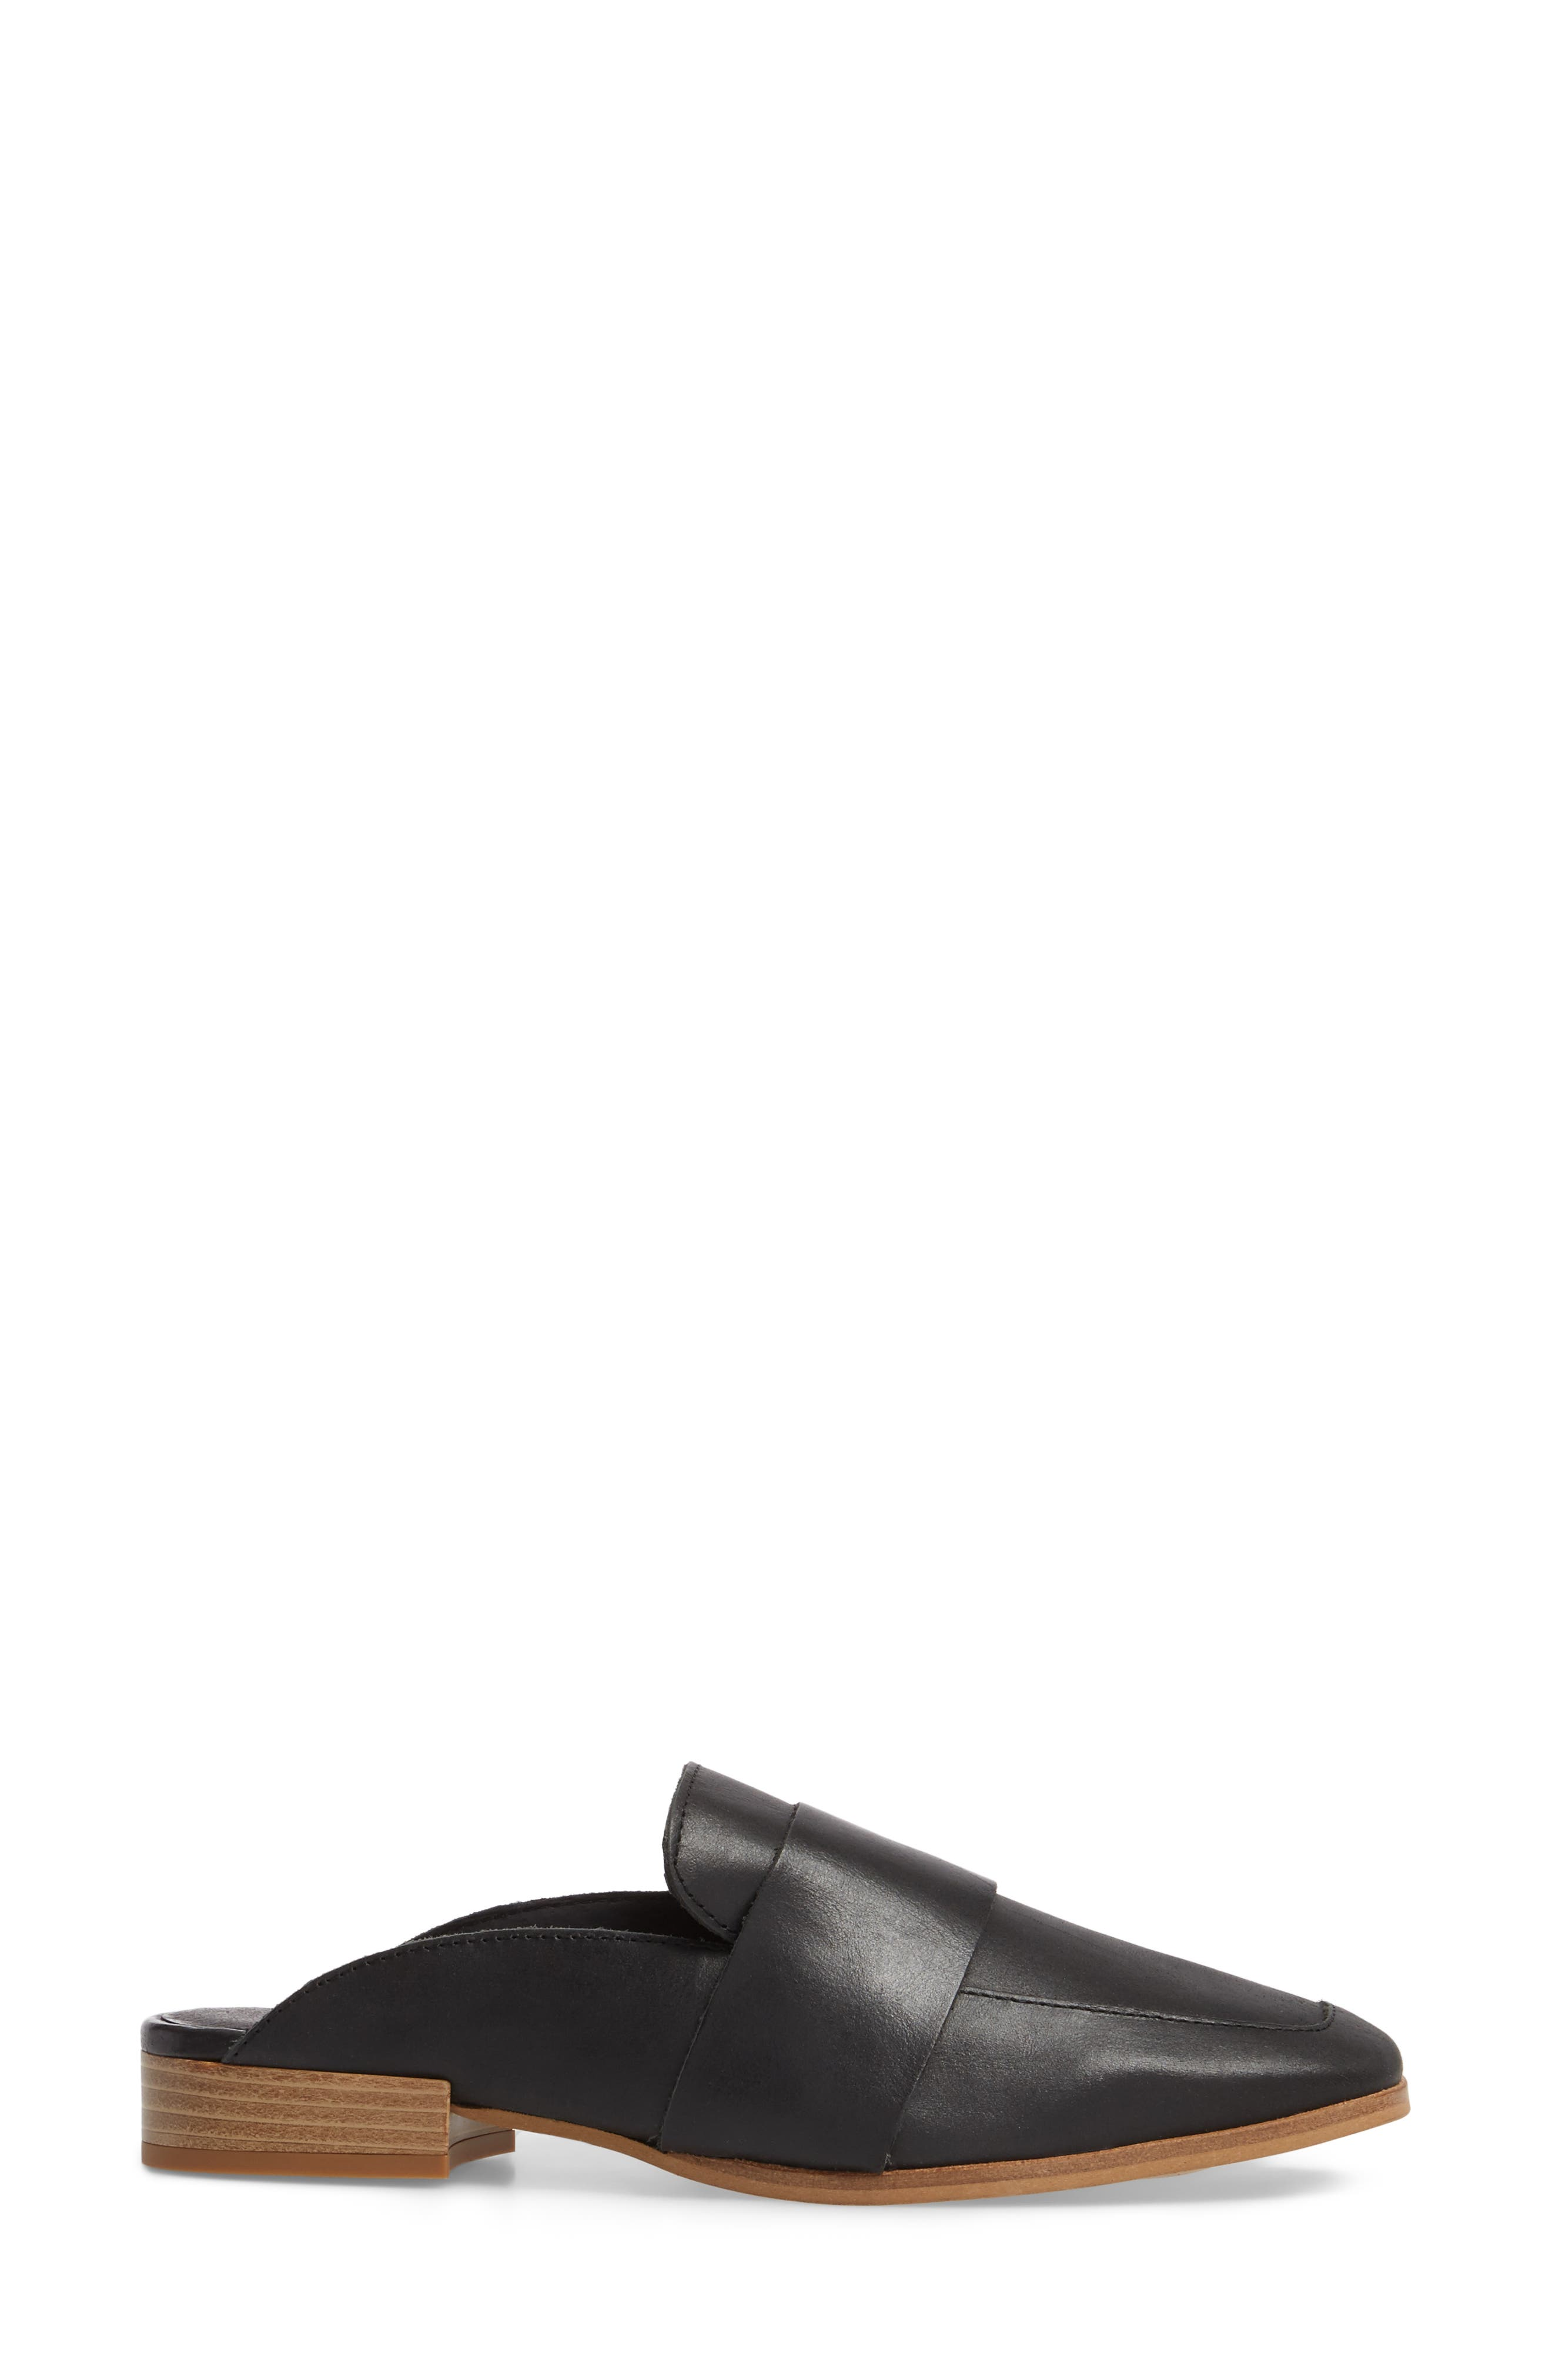 At Ease Loafer Mule,                             Alternate thumbnail 3, color,                             CARBON LEATHER